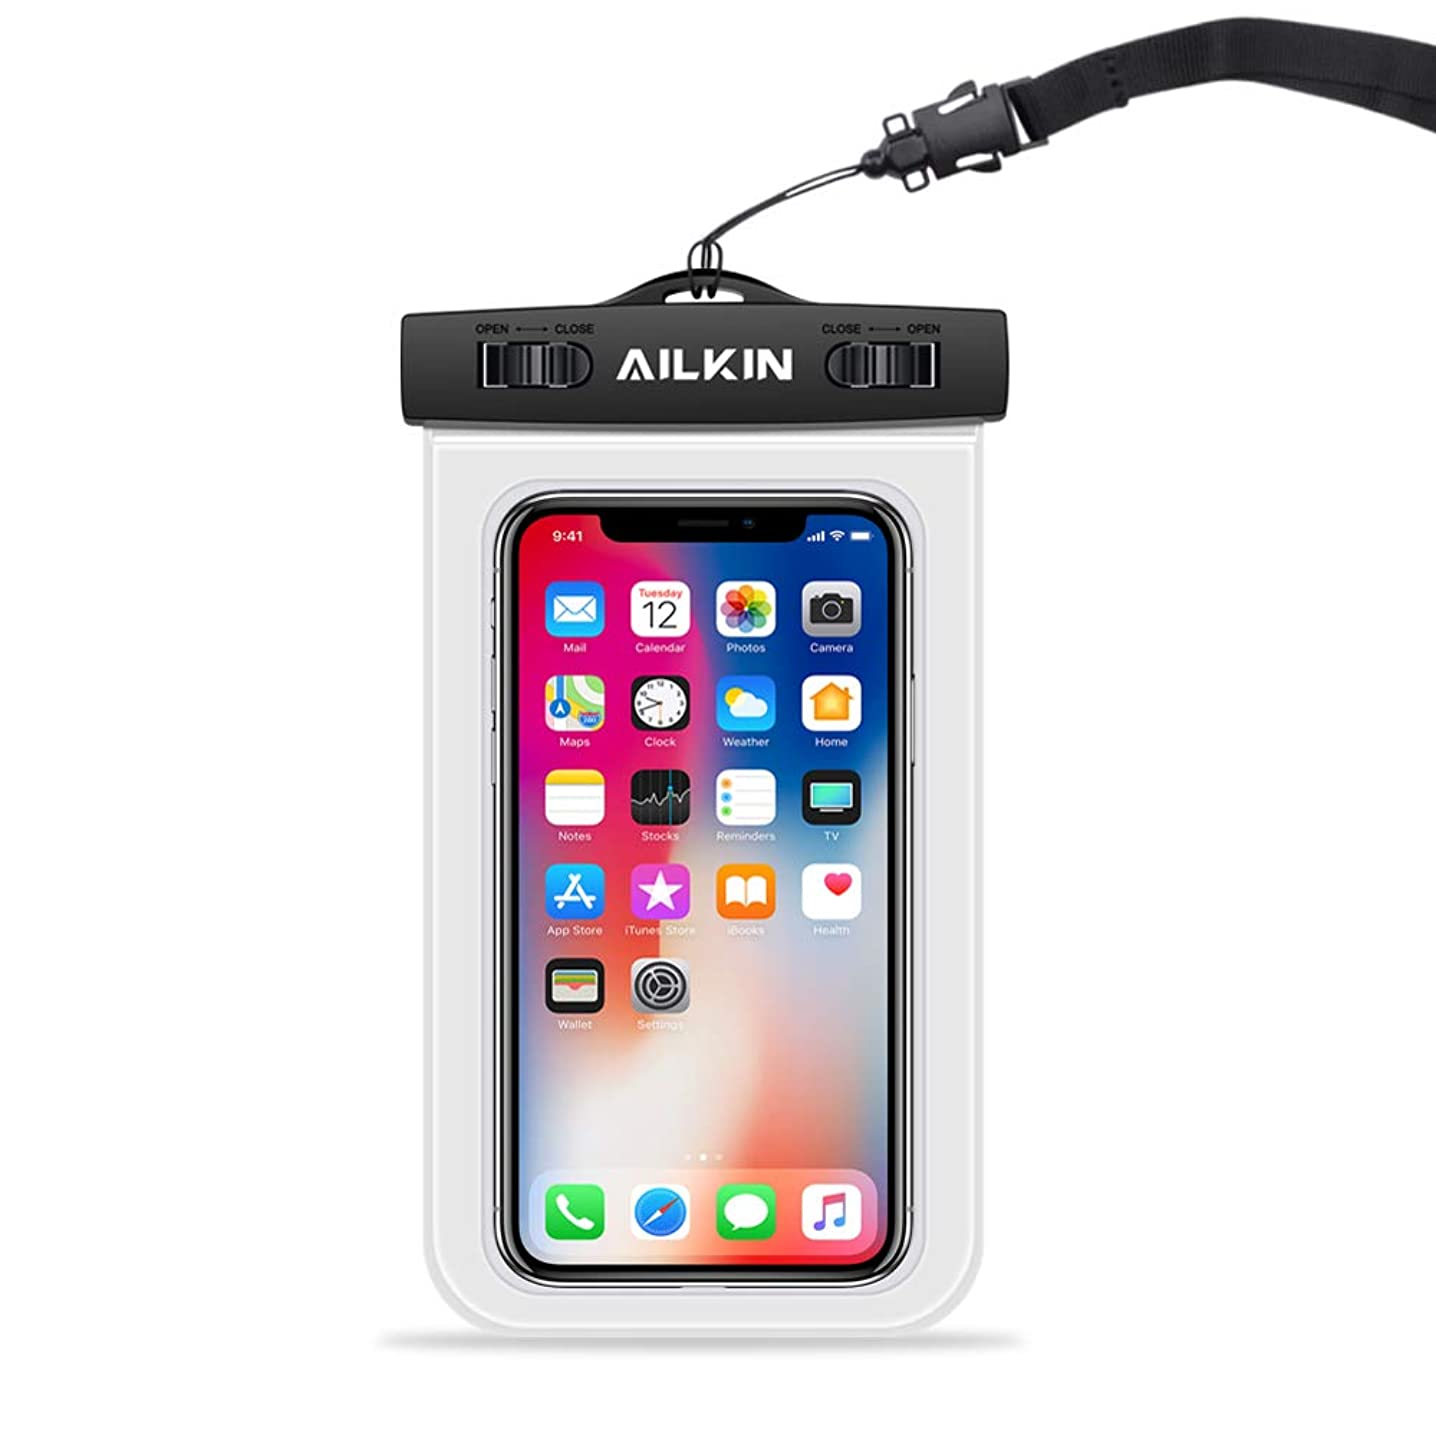 AILKIN Mobile Waterproof Bag, Cell Phone Dry Pouch, Floating Waterproof Phone case, Under Water Cell Phone Cover, Universal Water Resistant Phone case for iPhone 10 XR 8 Plus, Samsung Galaxy 10-6.3''